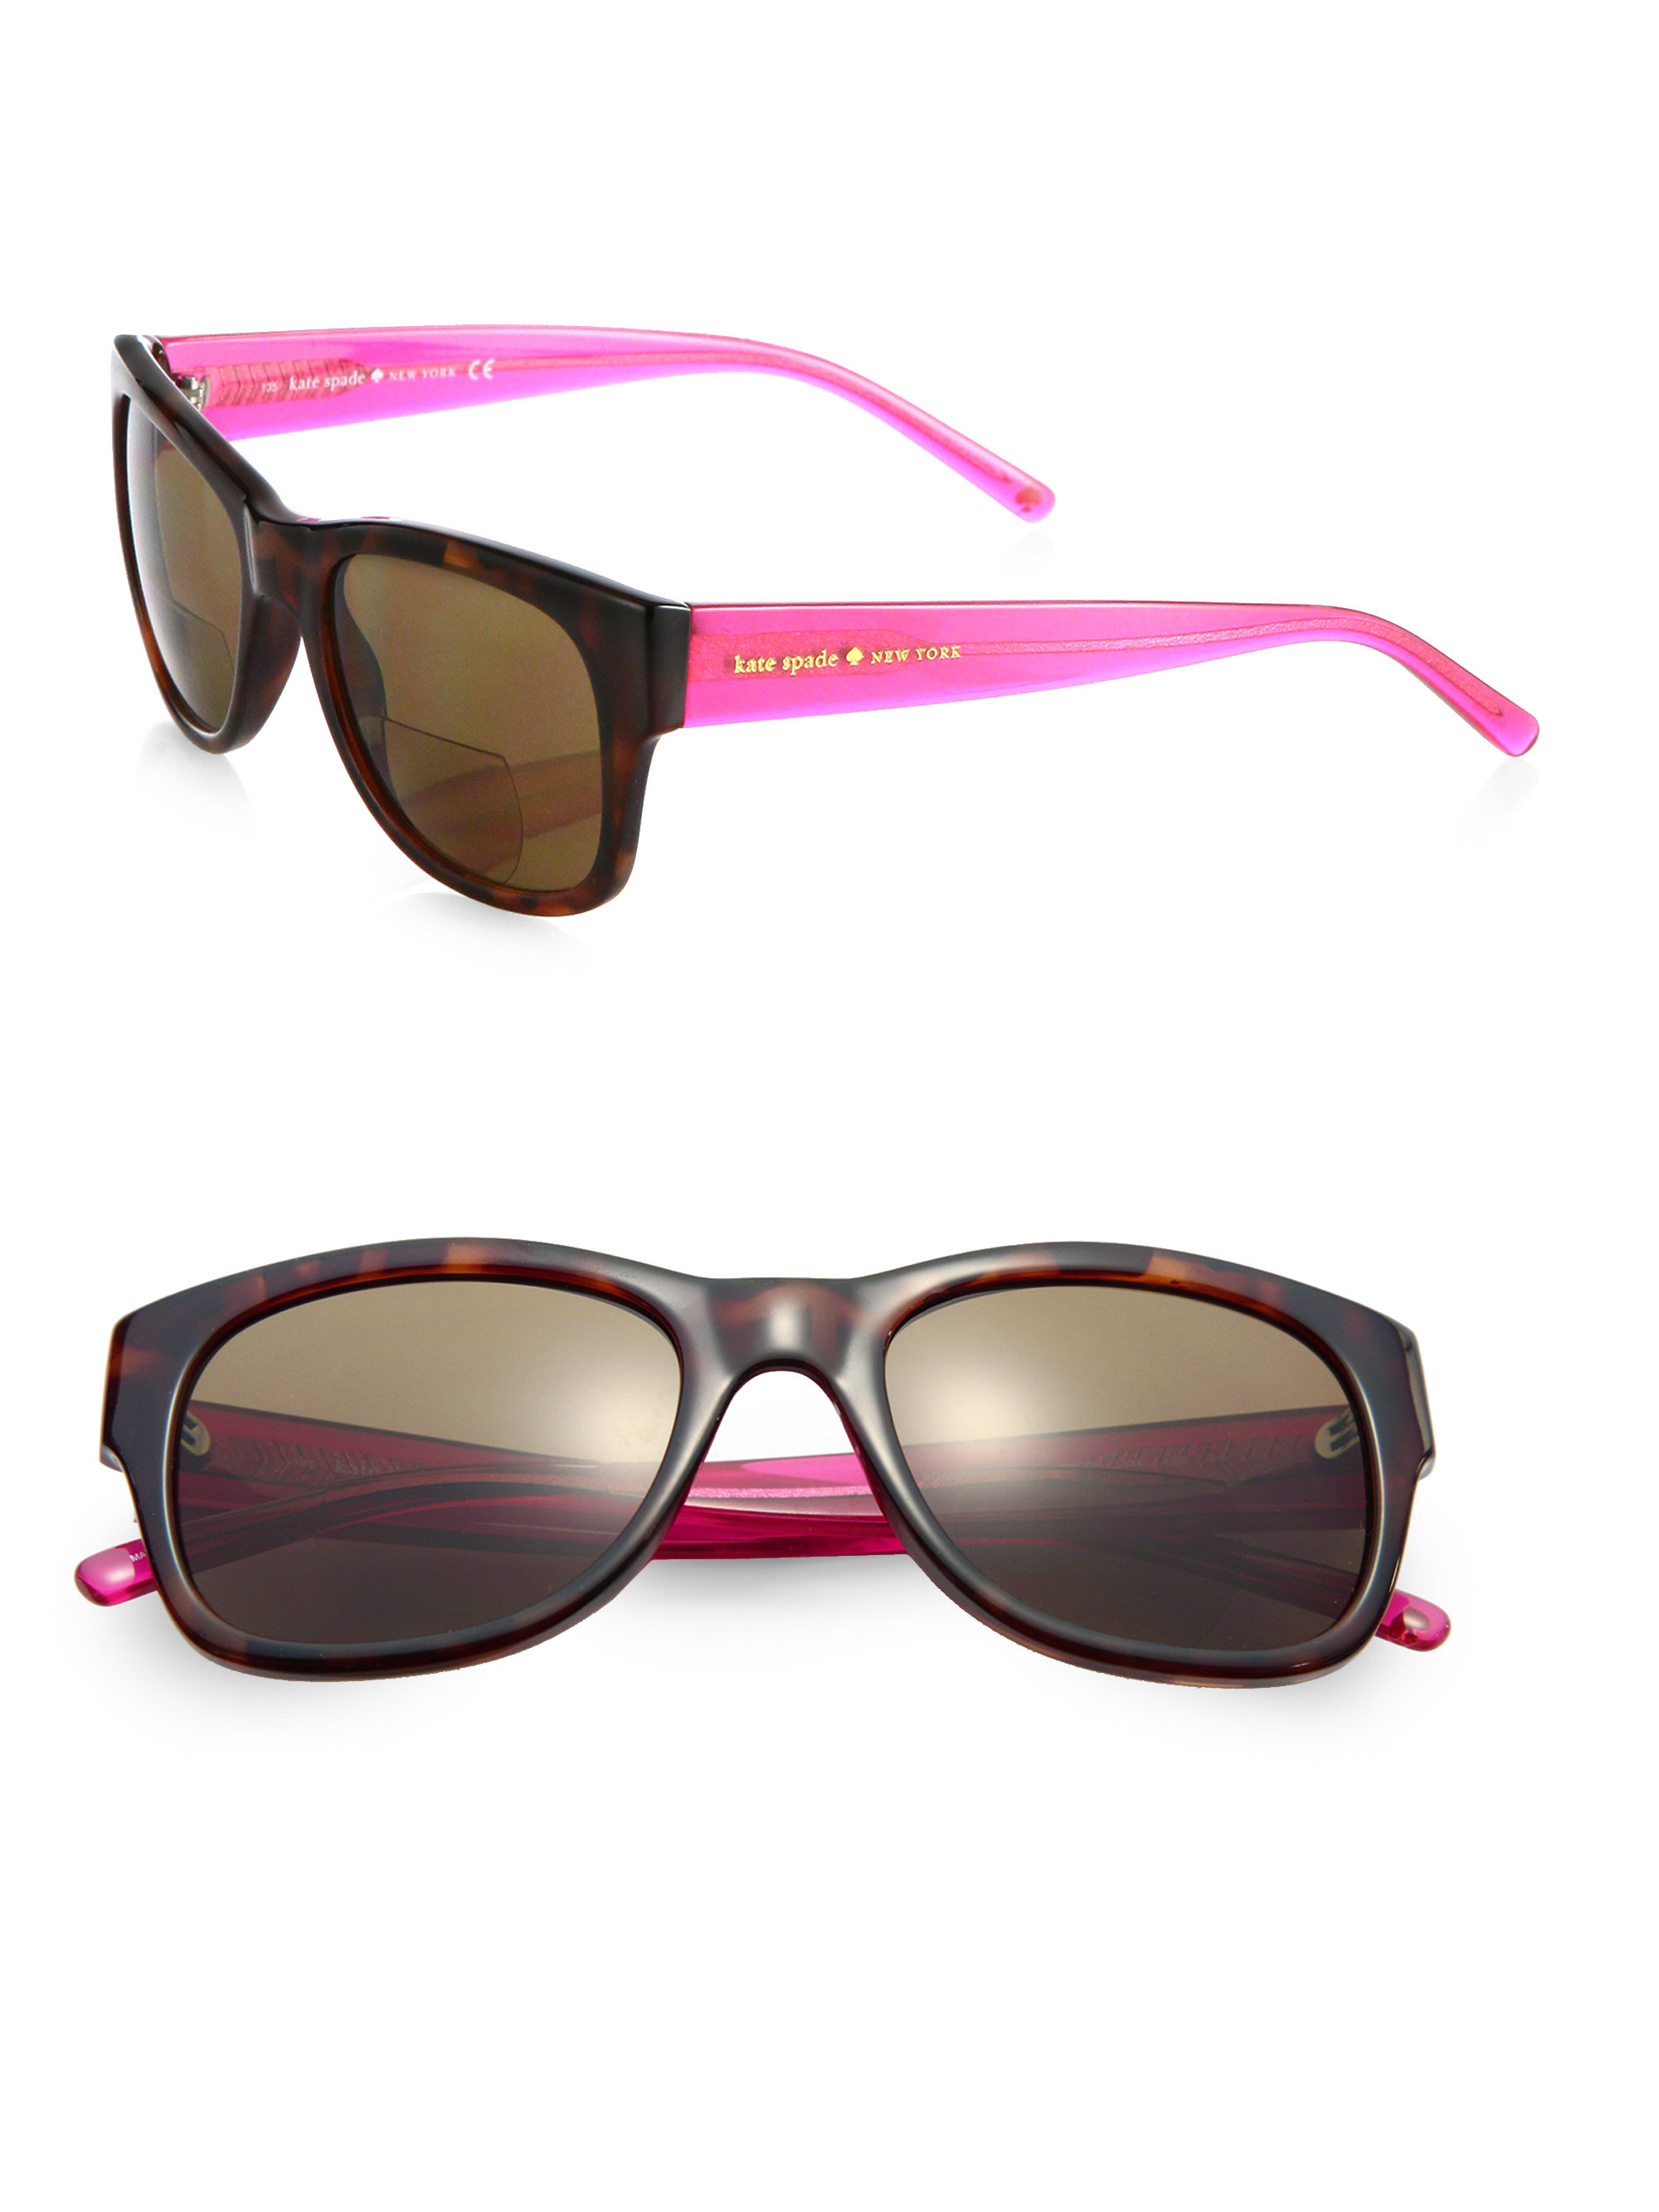 Tortoise Print Sunglasses  kate spade new york adanns tortoise print rectangular sunglasses